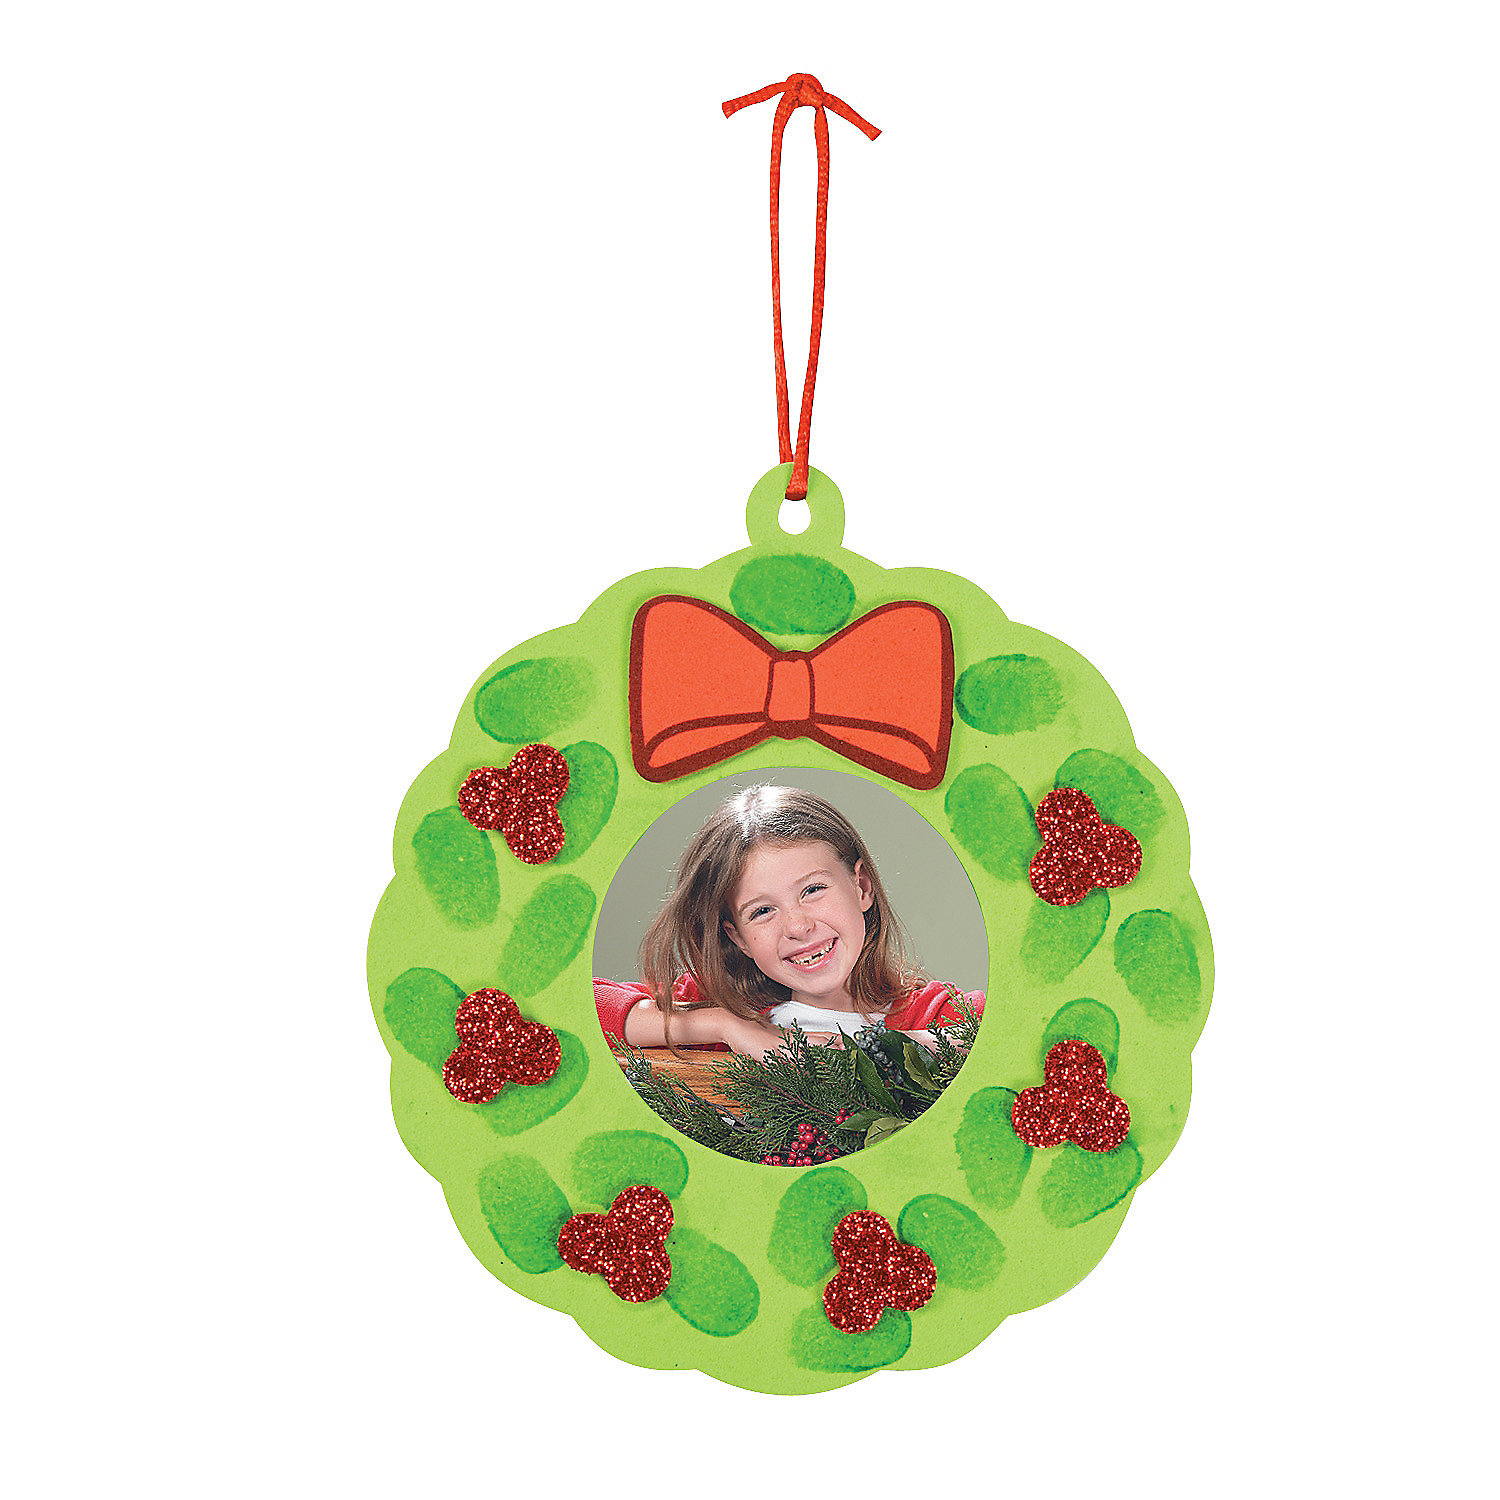 thumbprint wreath picture frame christmas ornament craft On photo frame ornament craft